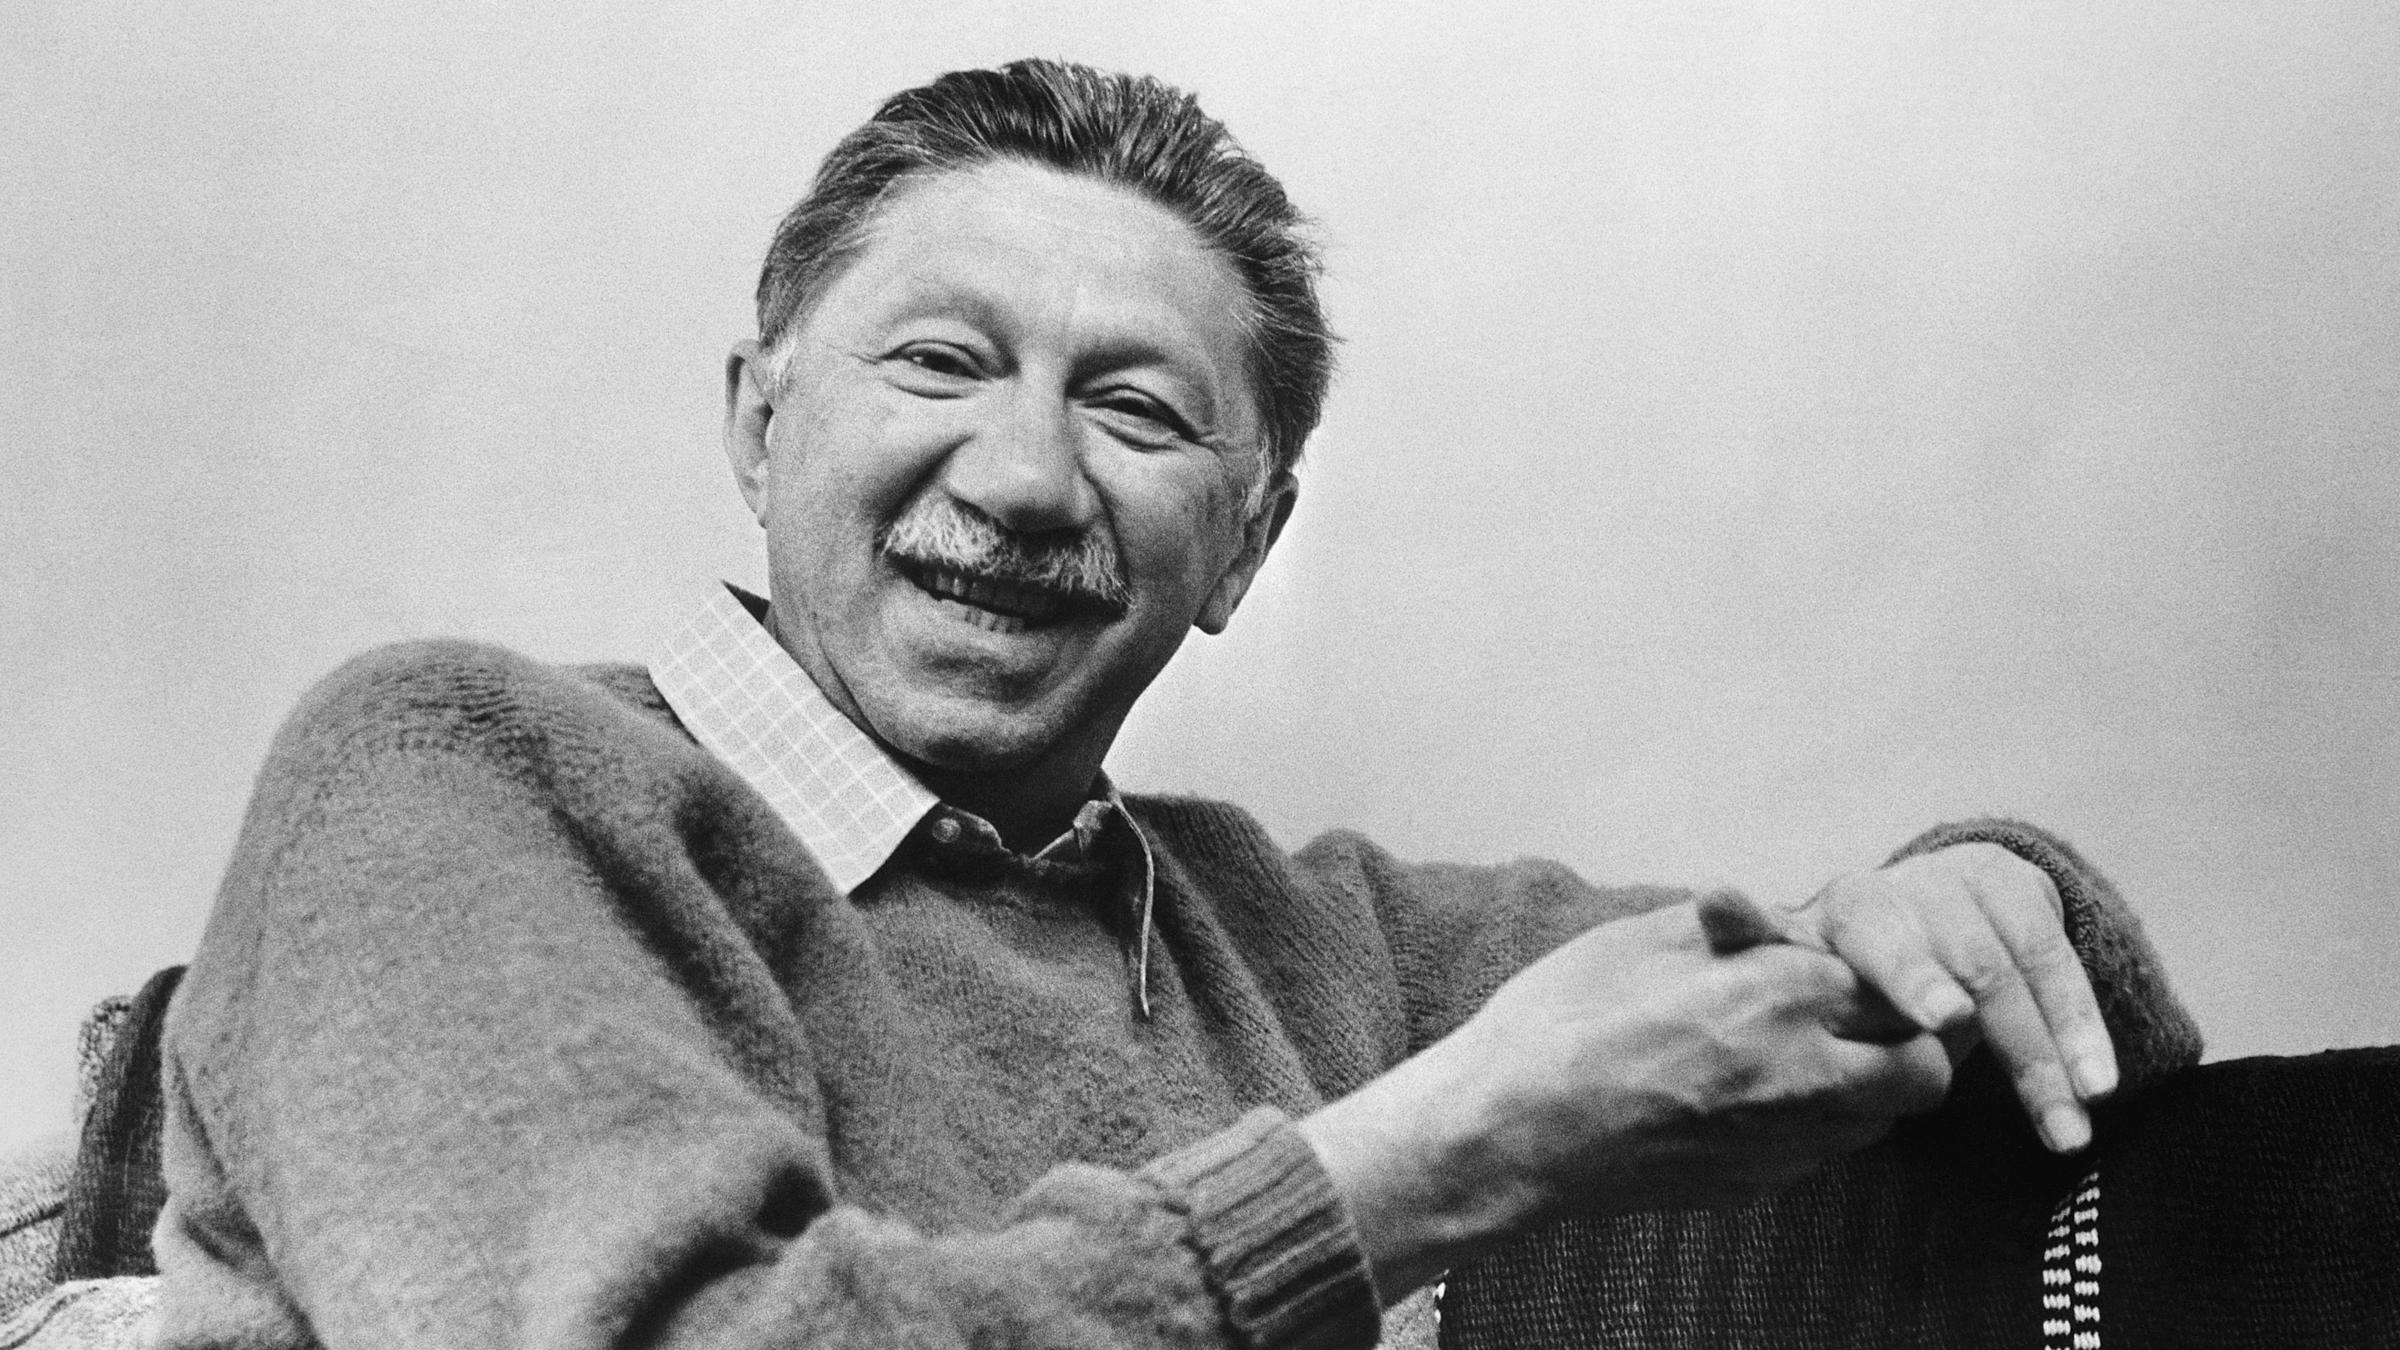 Overcoming Evil: An interview with Abraham Maslow, founder of humanistic psychology.